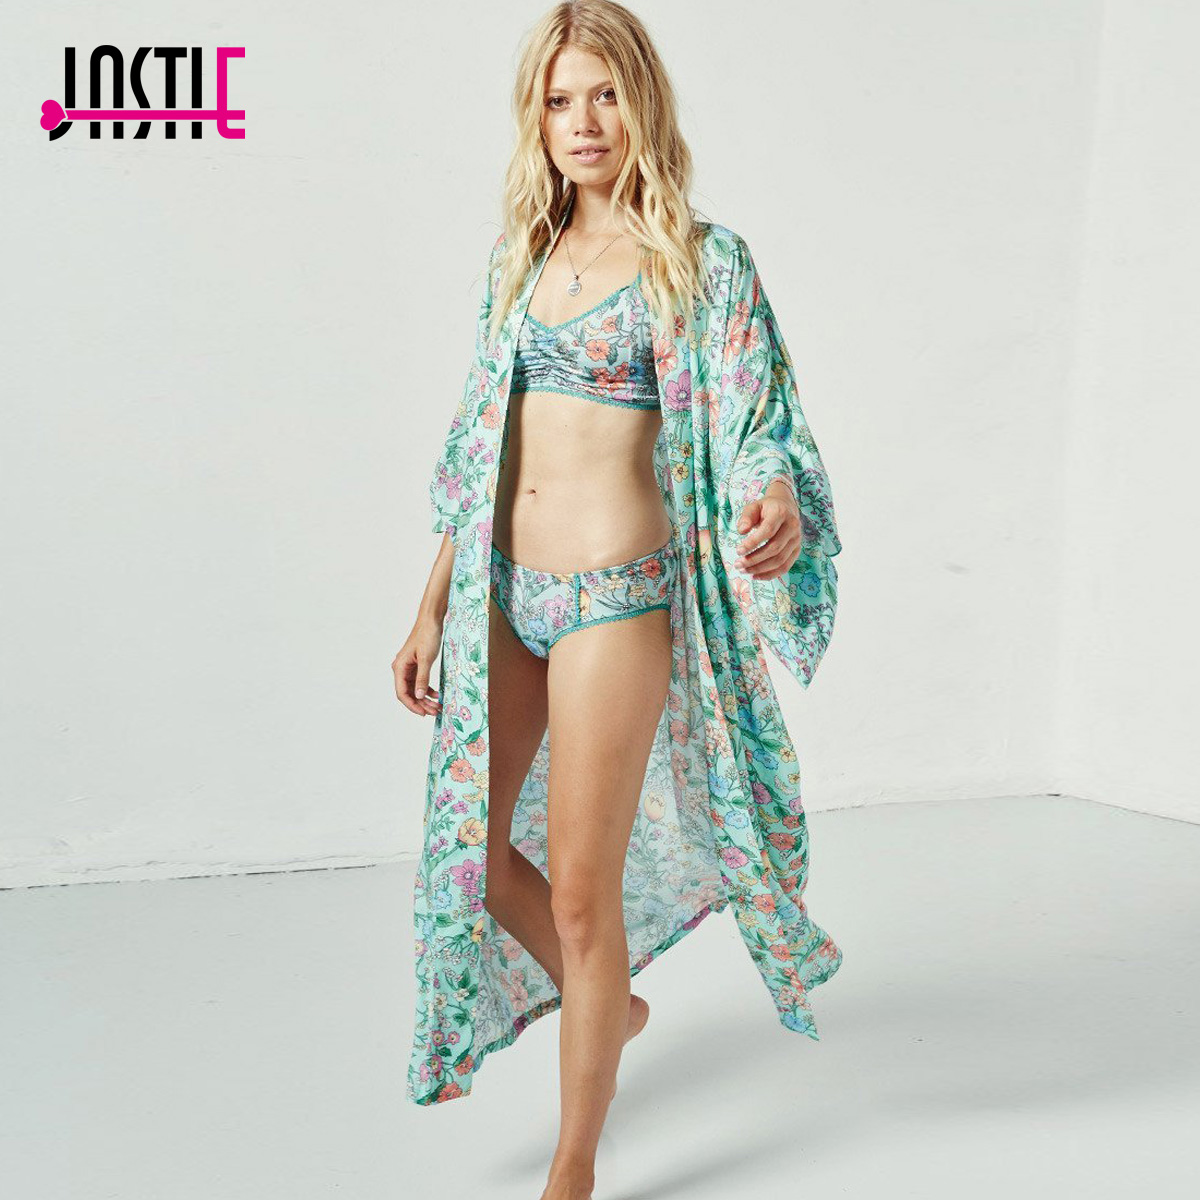 Jastie Gypsy gorgeous Sayulita Kimono Boho Floral print Women Jacket Shirt Drawstring Tie Waist Casual Beach Cardigan Long Top